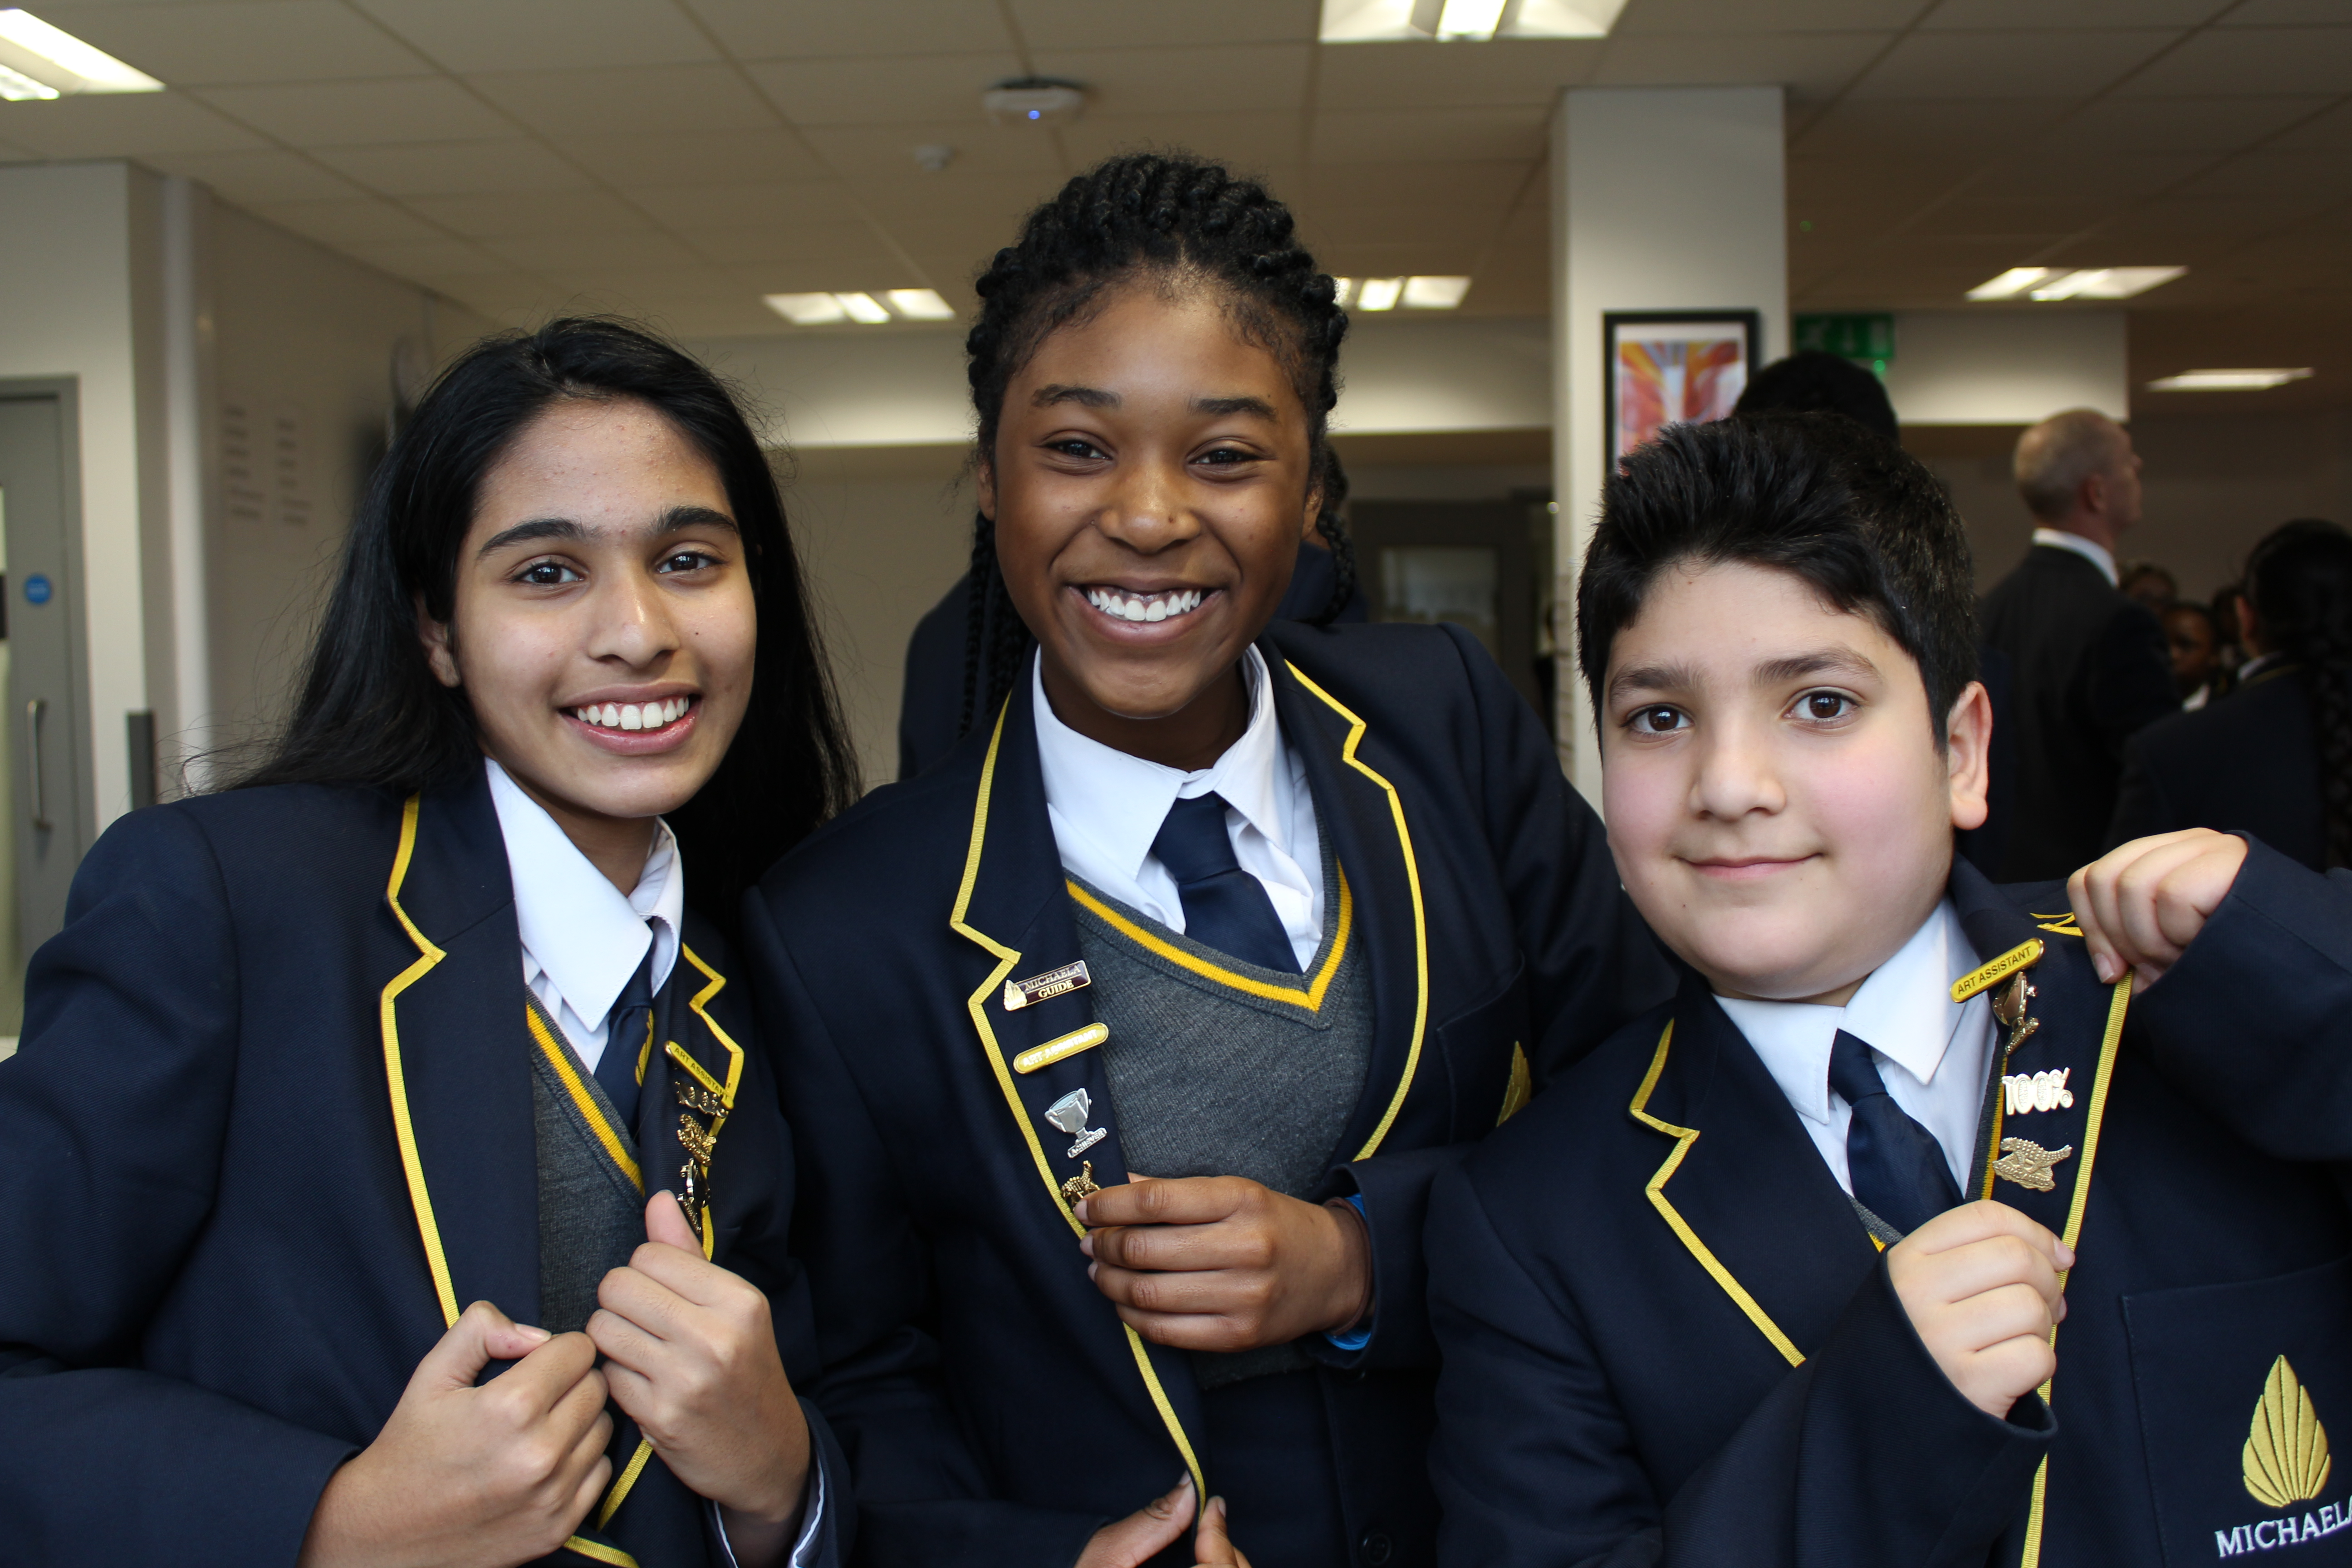 Term 1 at Michaela: what have I learned?